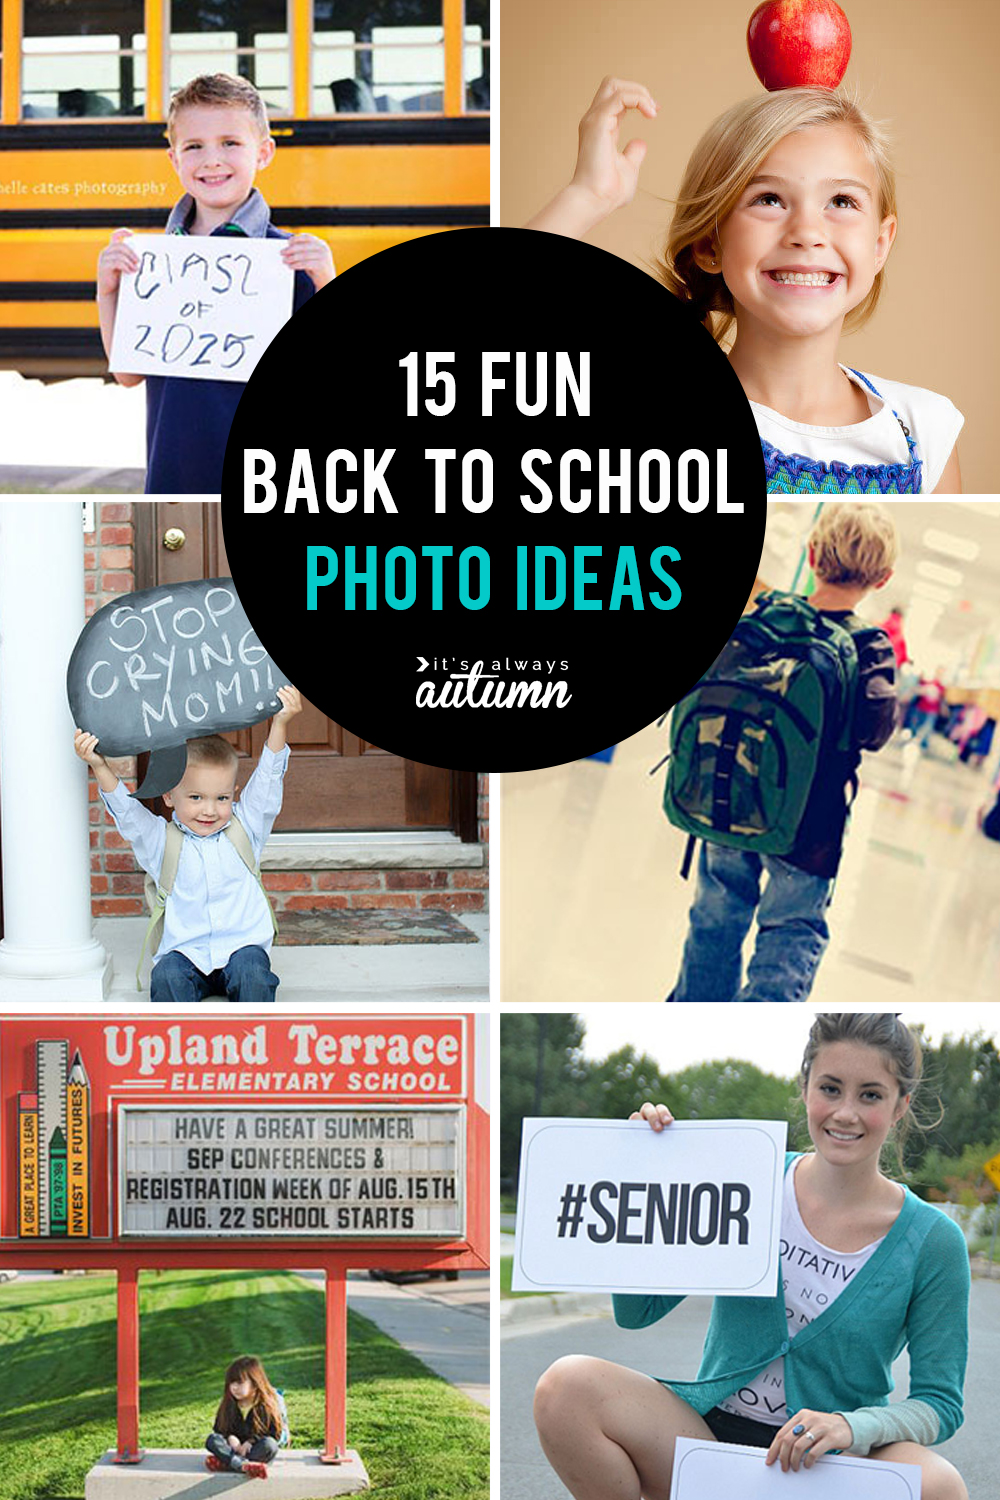 It's time to head back to school! Capture all the memories with these fun back to school photo ideas. Fun first day of school pictures.